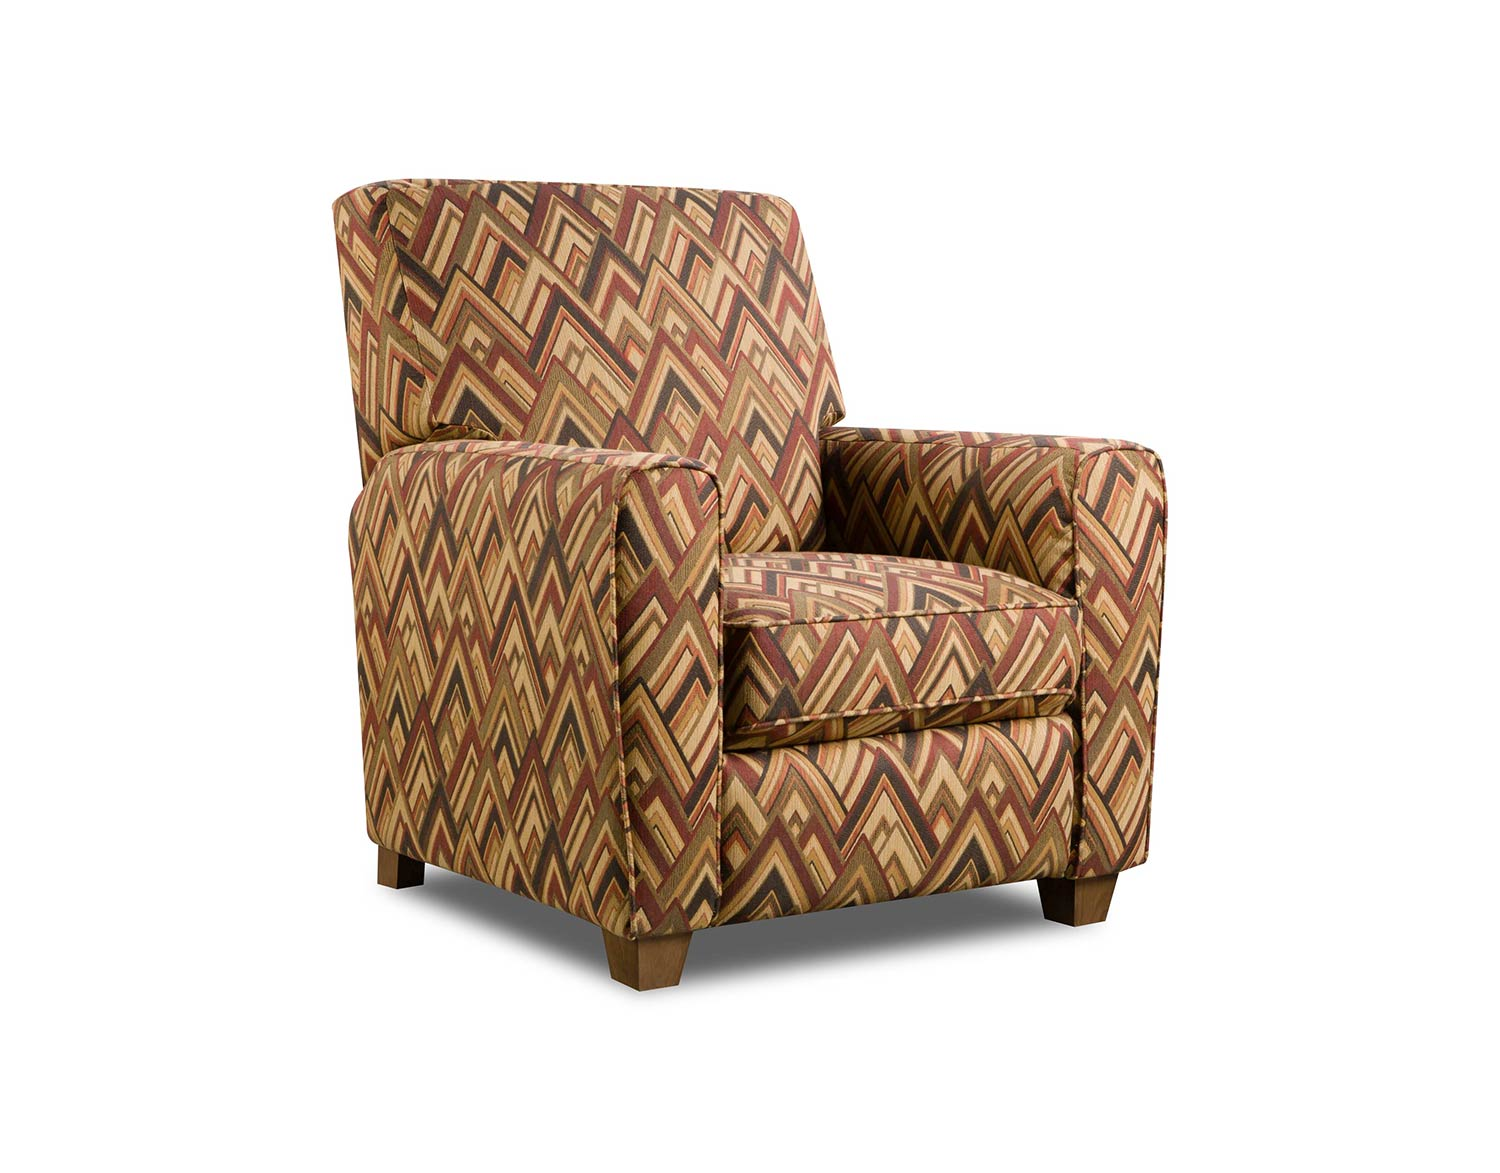 Chelsea Home Barras Recliner Chair - Boomerang Sunset